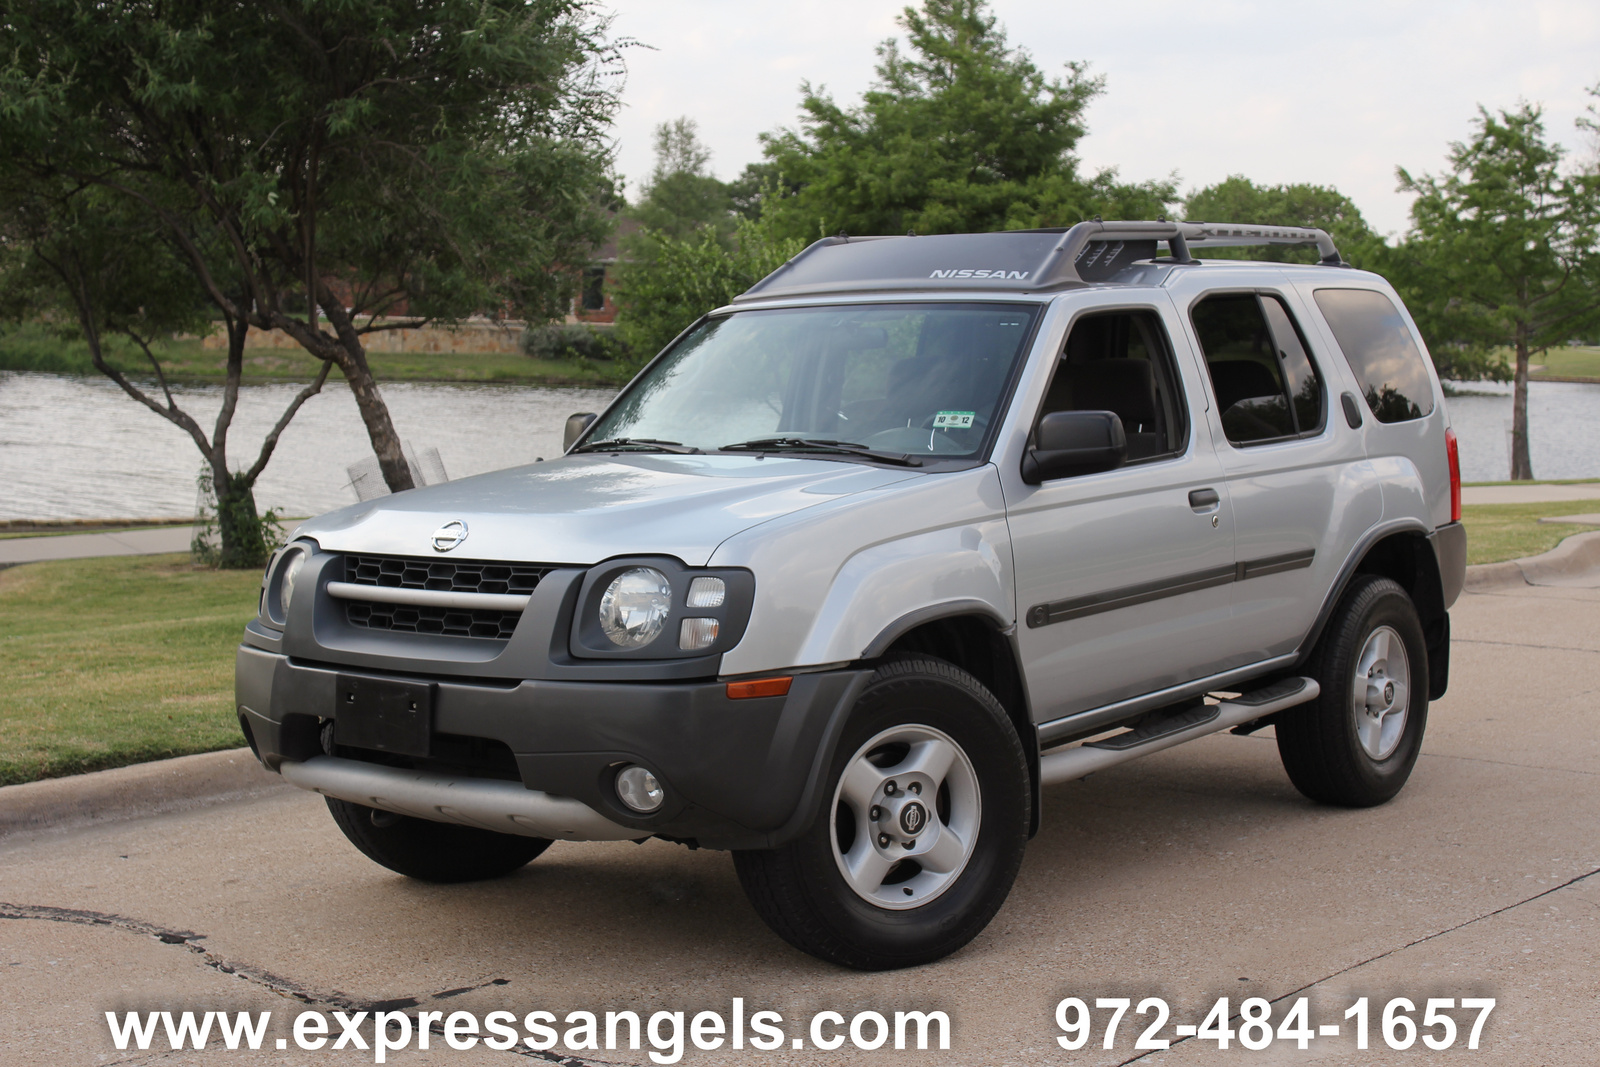 new and used nissan xterra prices photos reviews specs. Black Bedroom Furniture Sets. Home Design Ideas